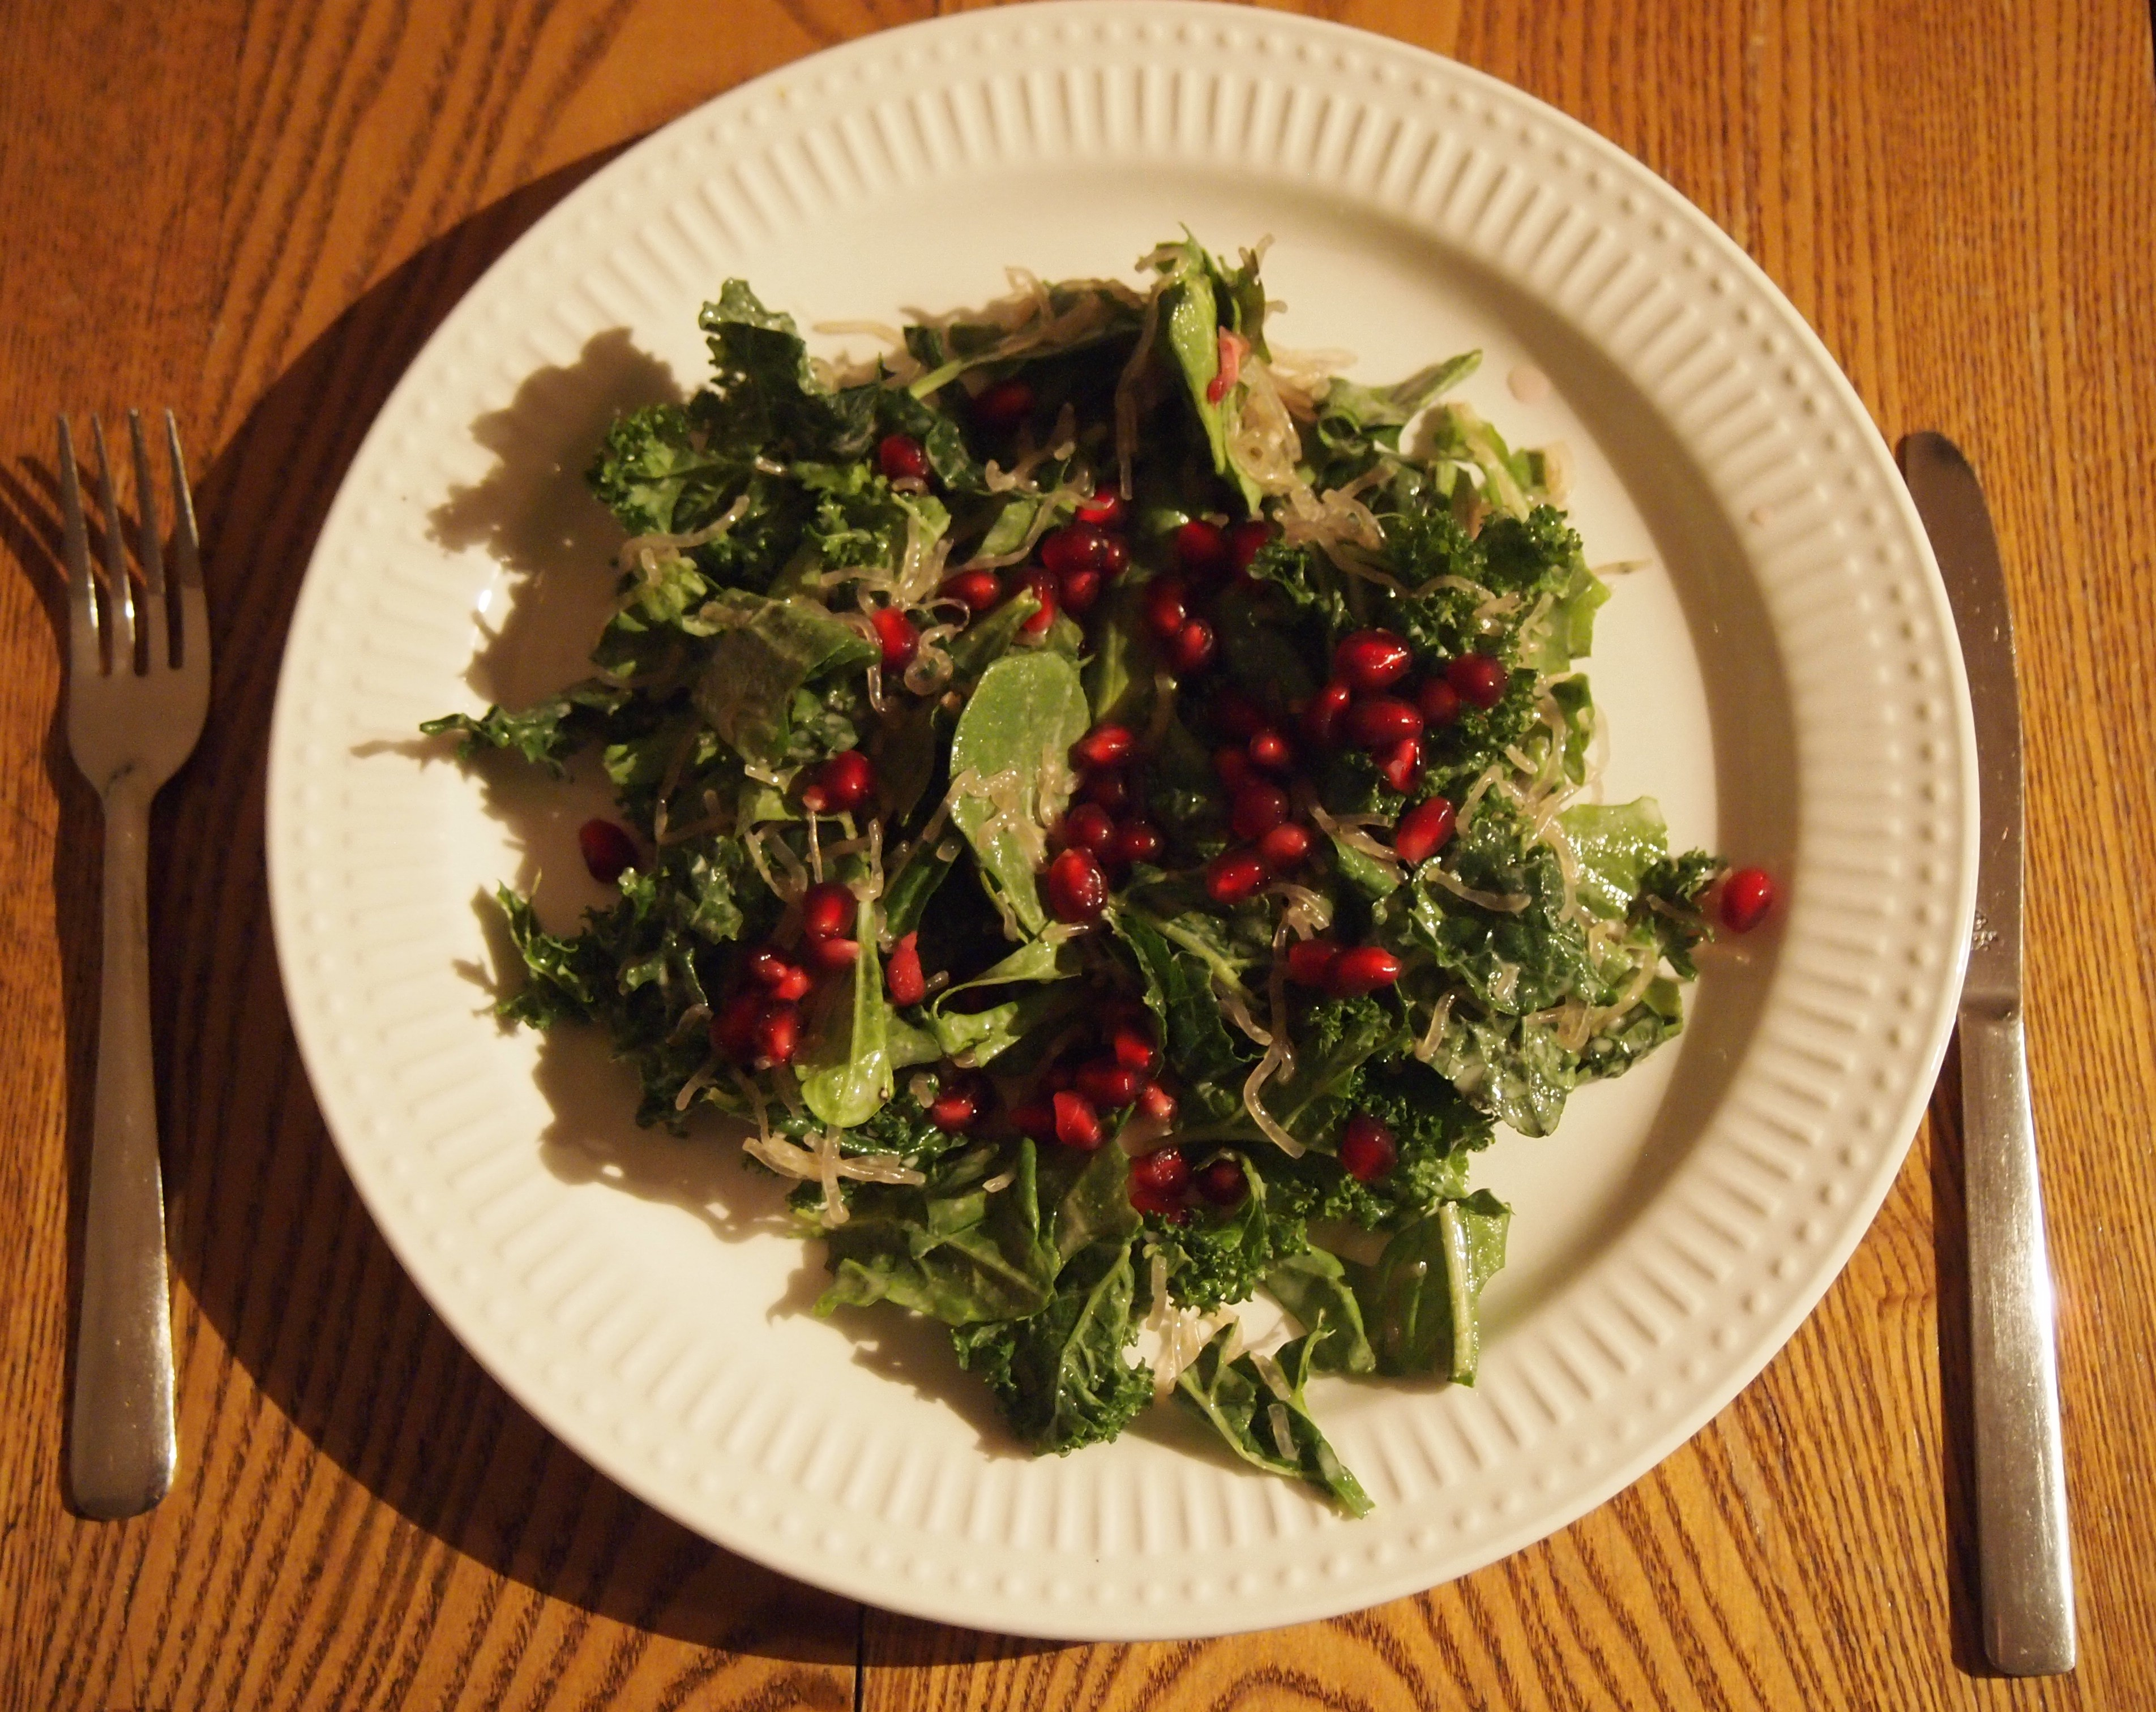 Red Pomegranate, Leafy Greens And Kelp Noodle Salad - So Colourful